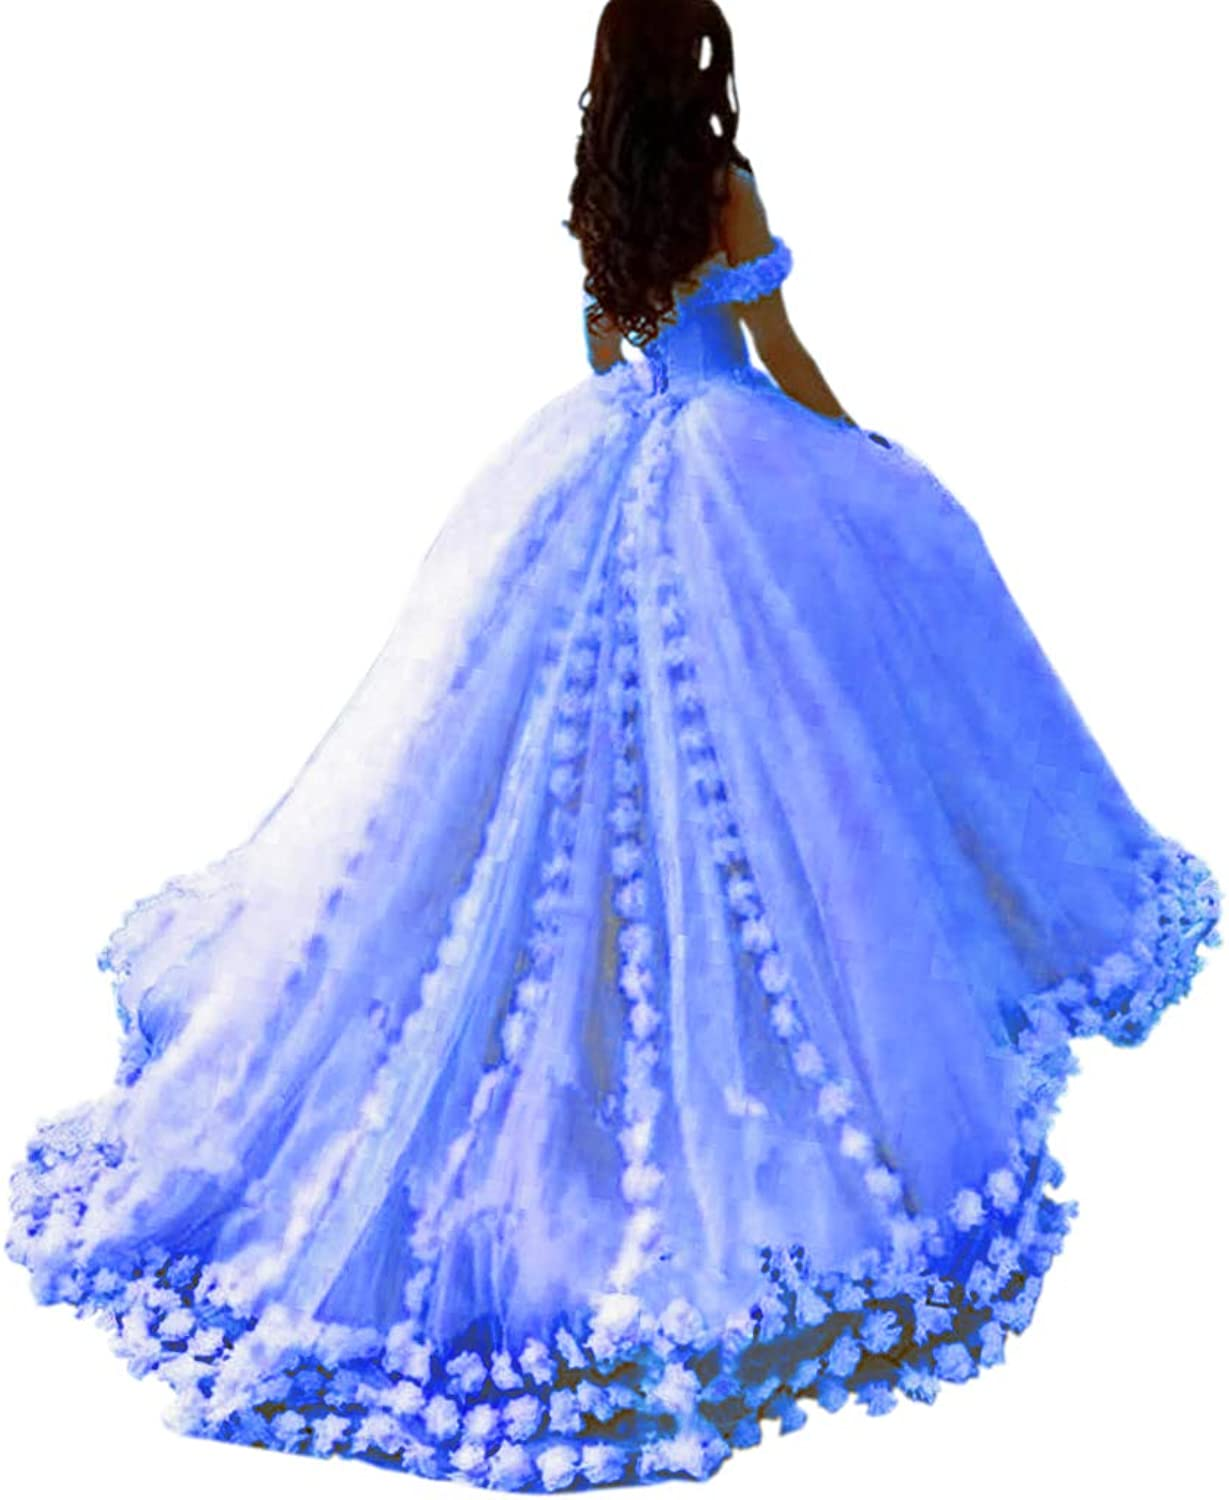 Mauwey Women's 2019 New Fluffy Tulle Ball Gown Quinceanera Dresses Evening Prom Dresses Formal Party Gown with Flowers